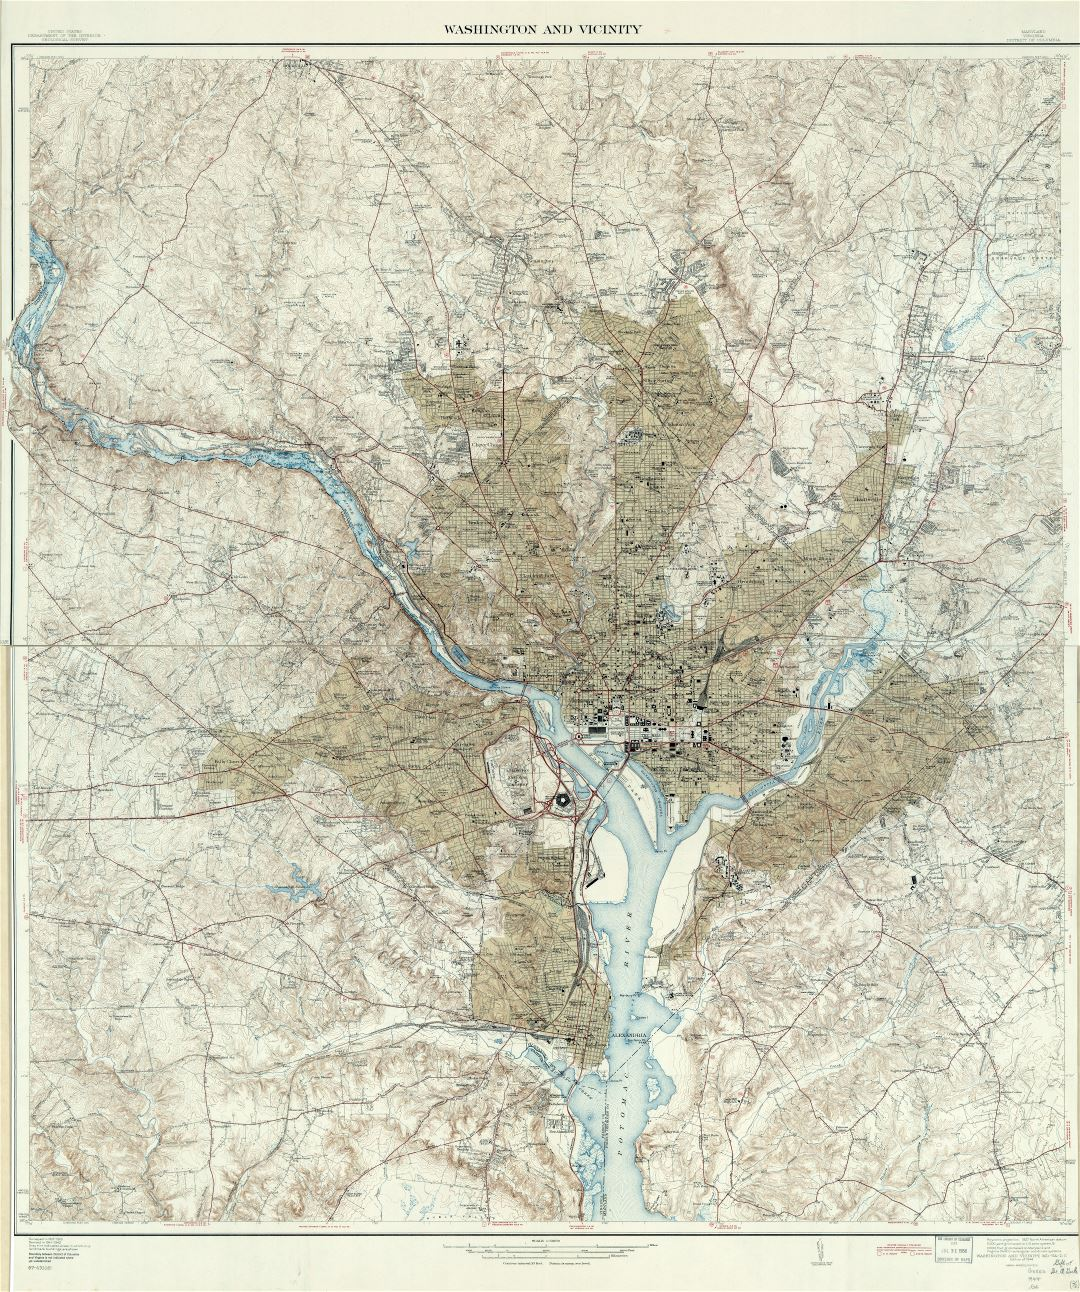 Large scale detailed map of Washington and vicinity, District of Columbia, Maryland, Virginia - 1944